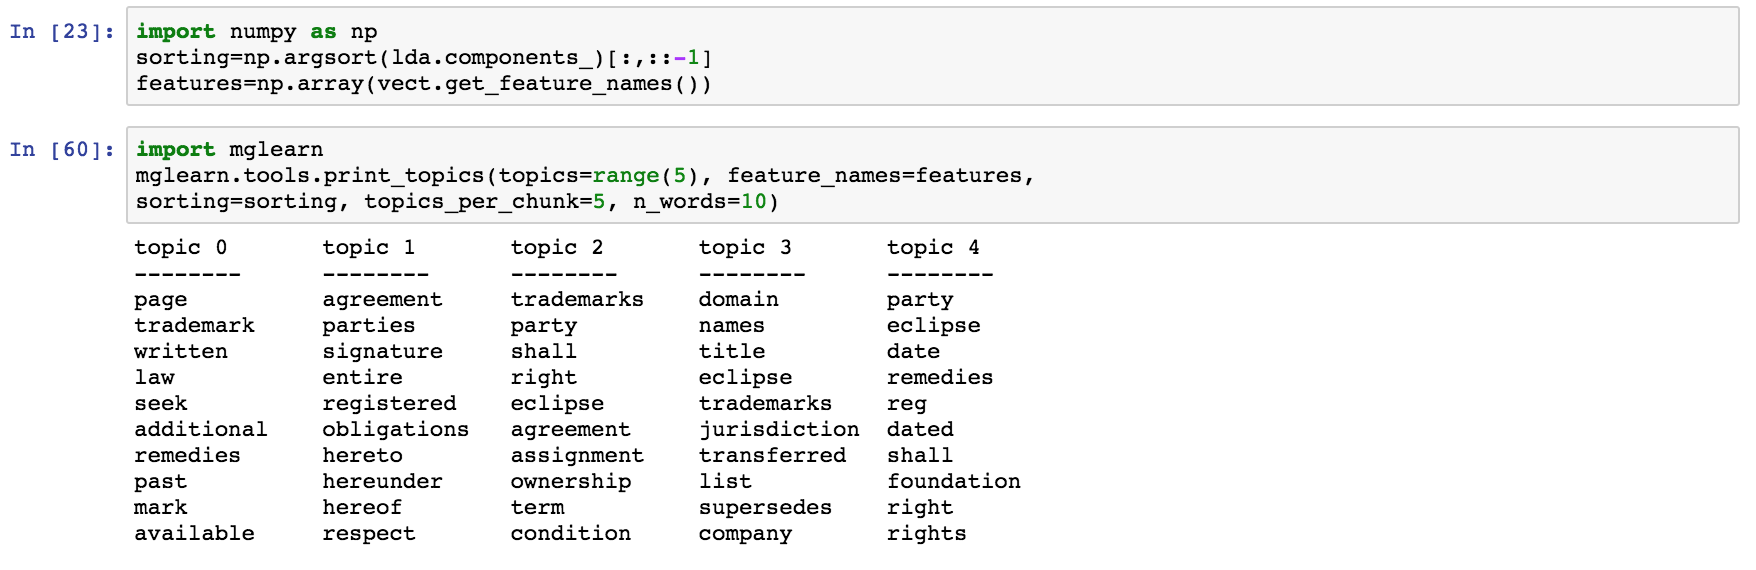 Nlp For Topic Modeling Summarization Of Legal Documents